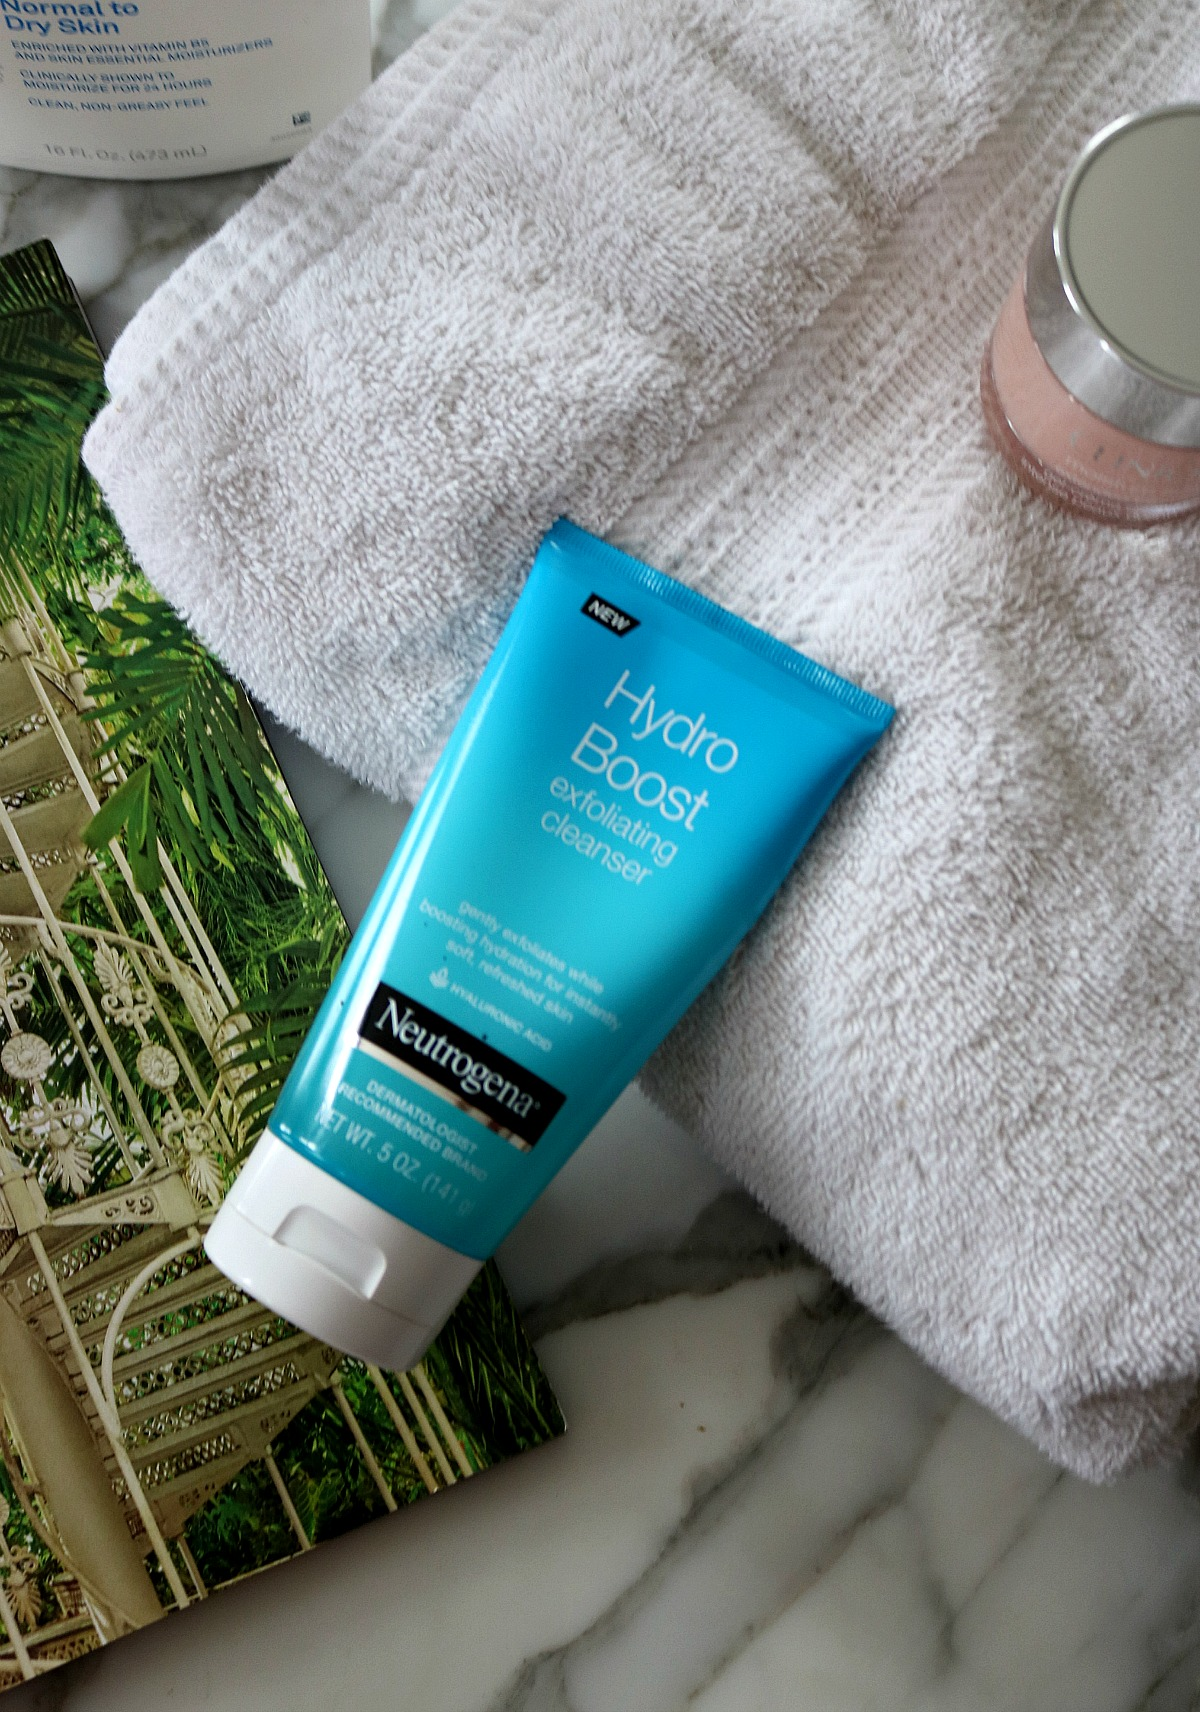 Most Popular Blog Posts of 2018 I Neutrogena Hydro Boost Exfoliating Cleanser Review I DreaminLace.com